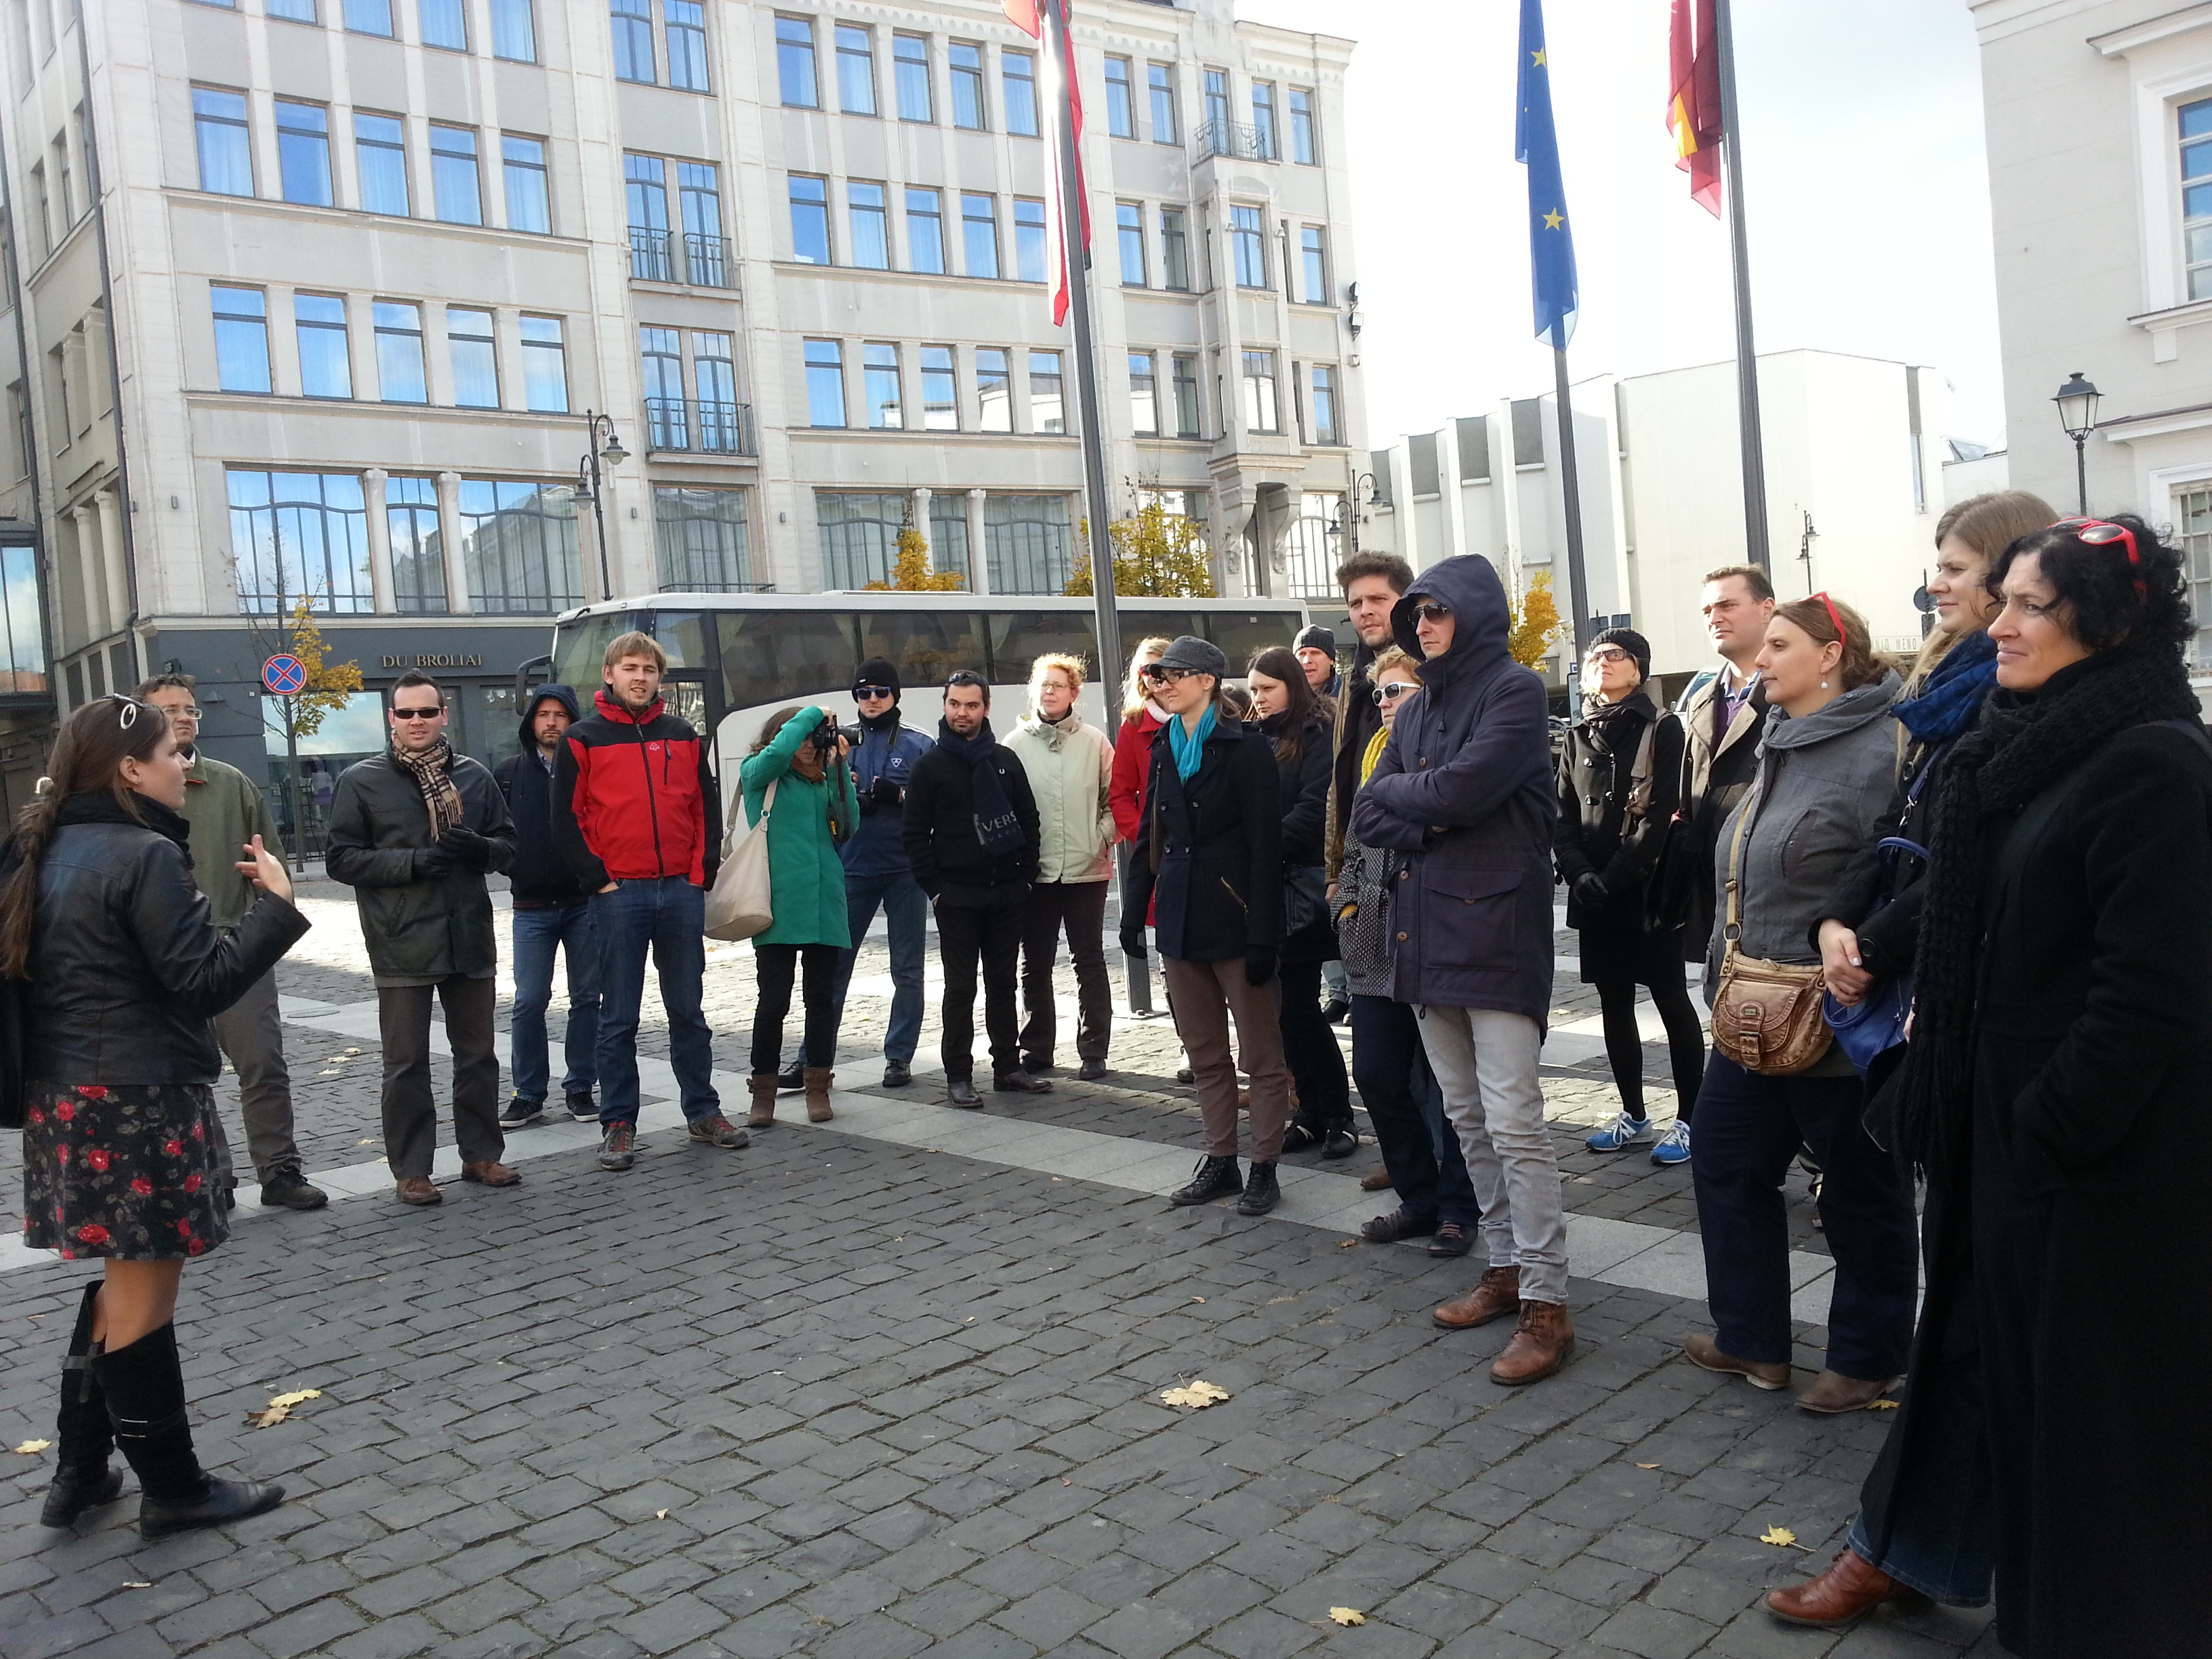 Guided tour in Vilnius